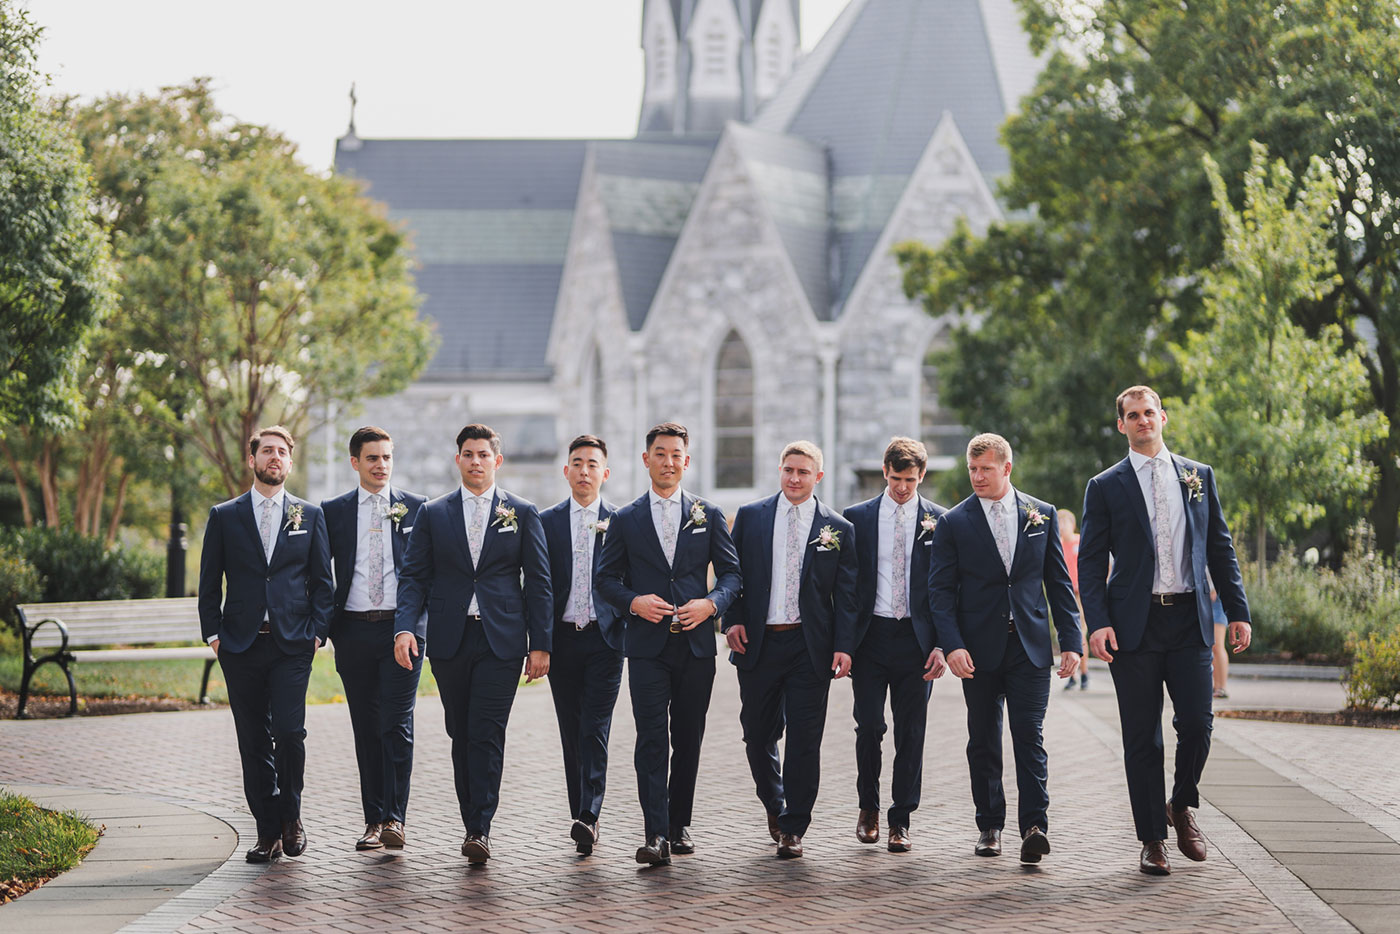 groom and groomsmen walking from a wedding at Saint Thomas of Villanova by Weddings by Hanel